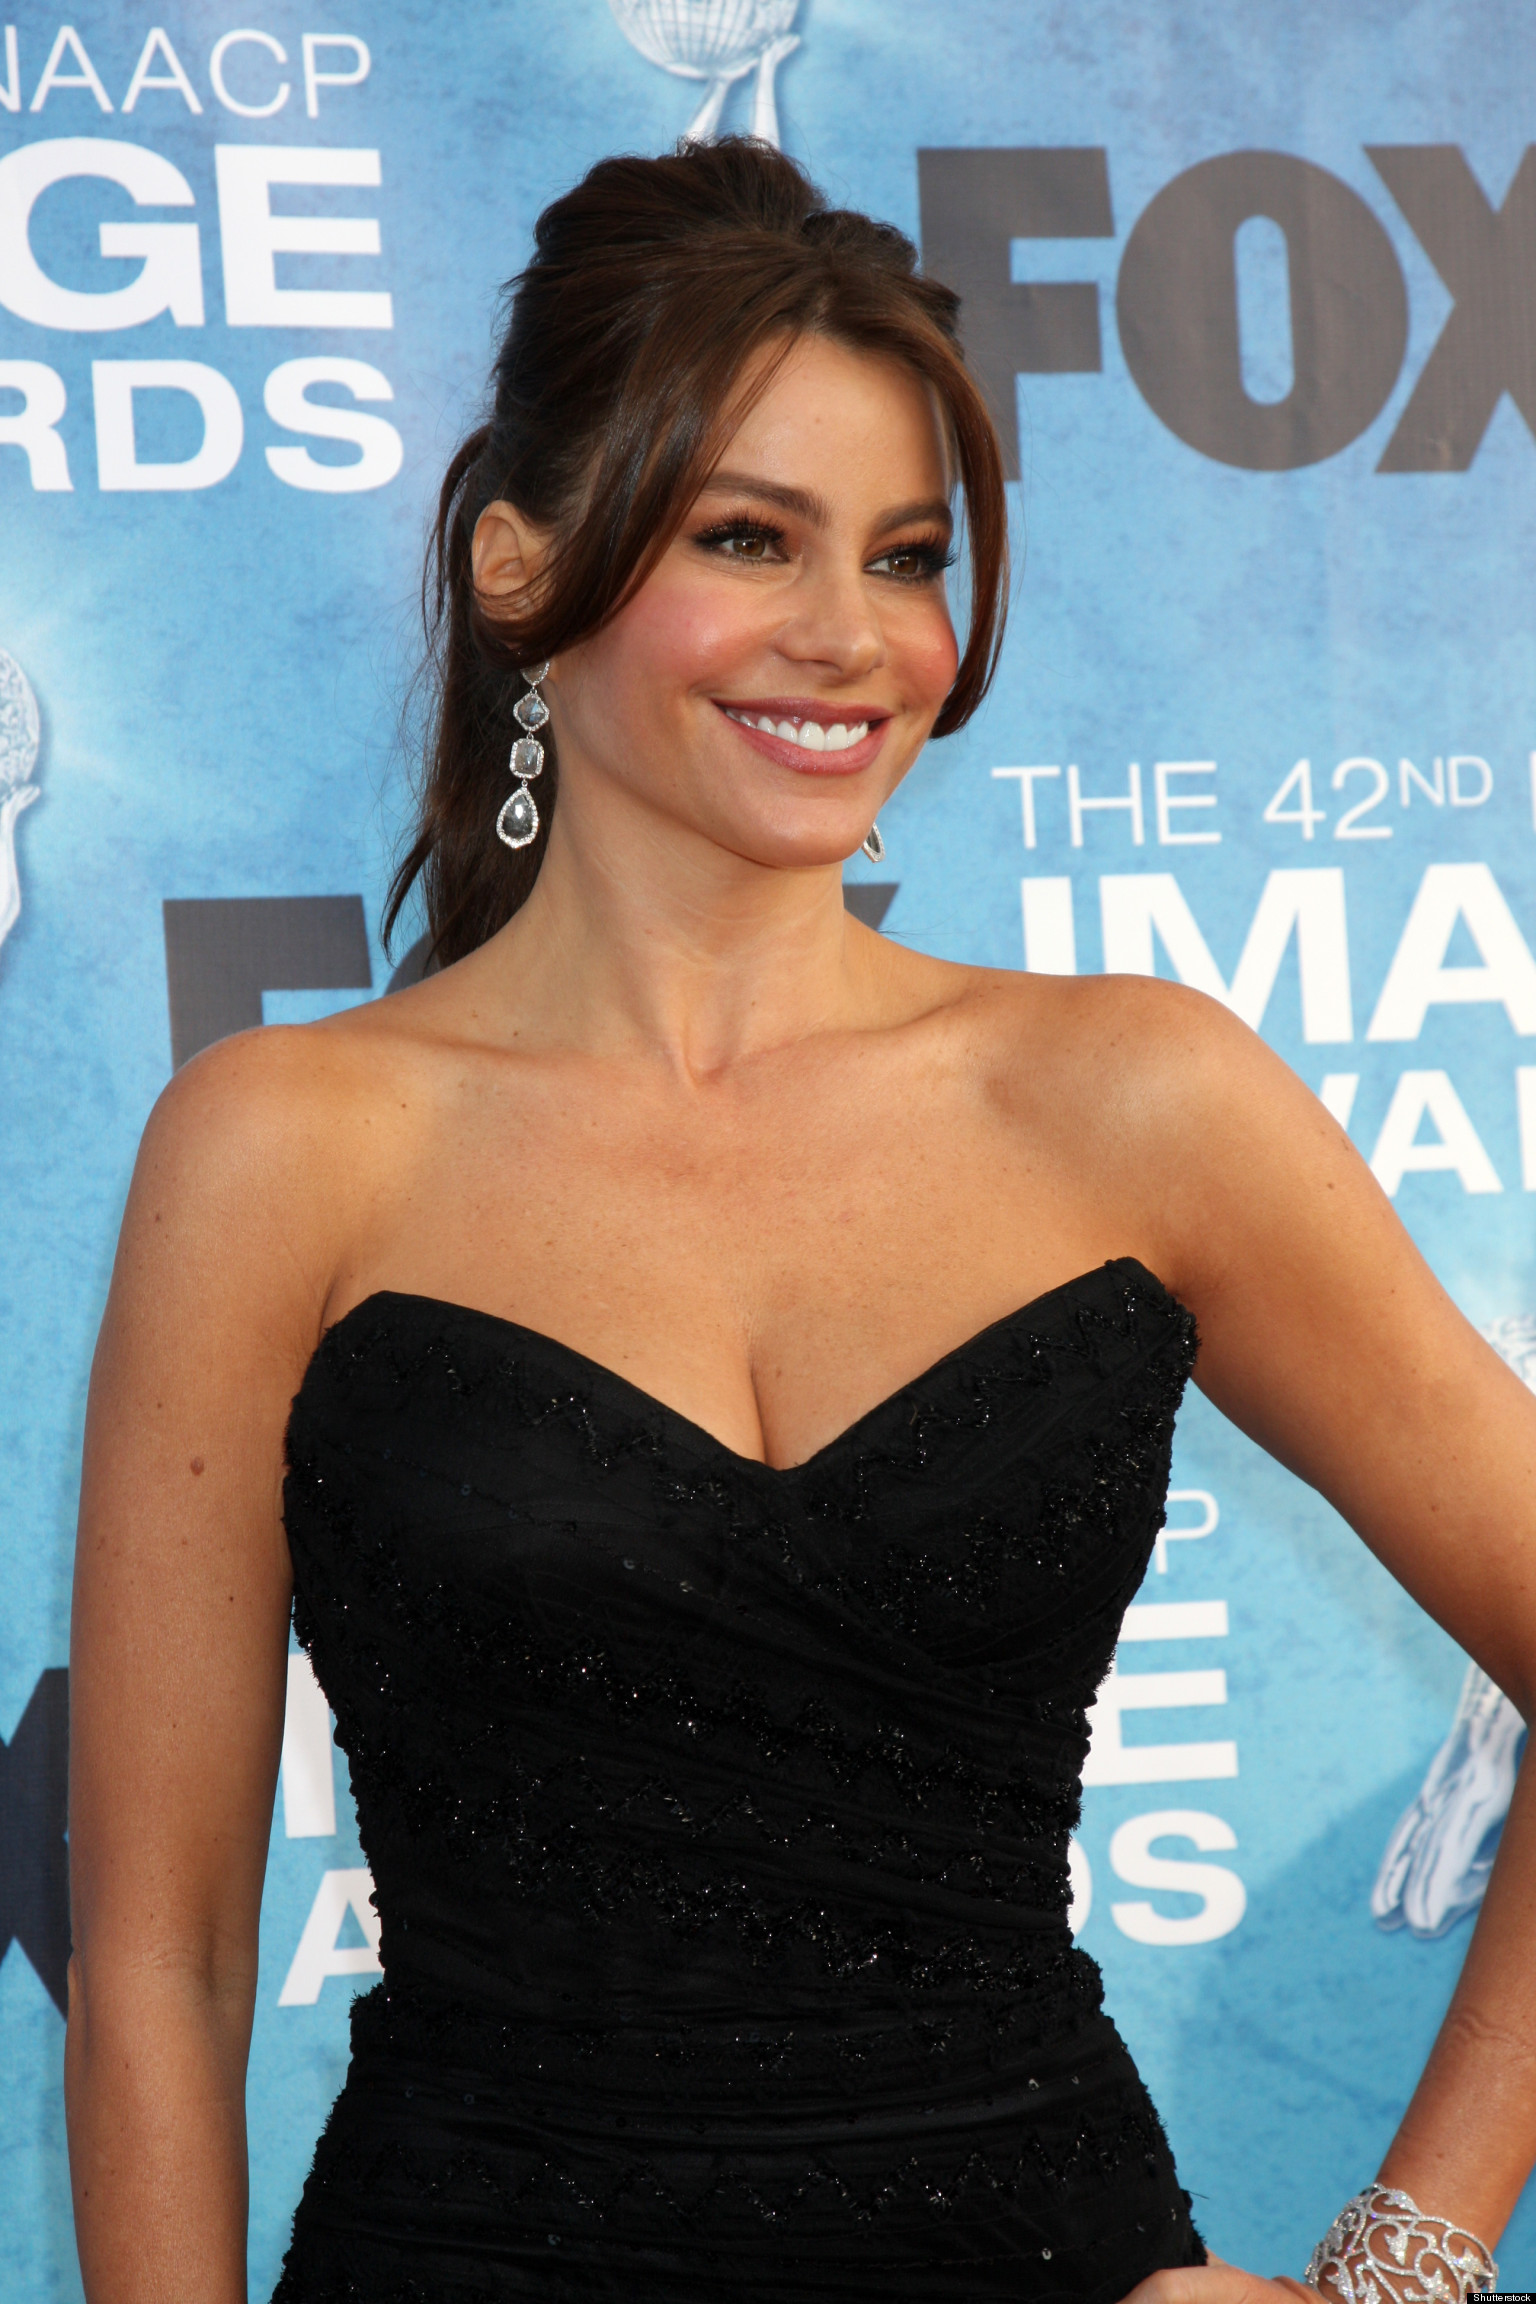 Sofia Vergara Opens Up About Her Breasts Video Huffpost